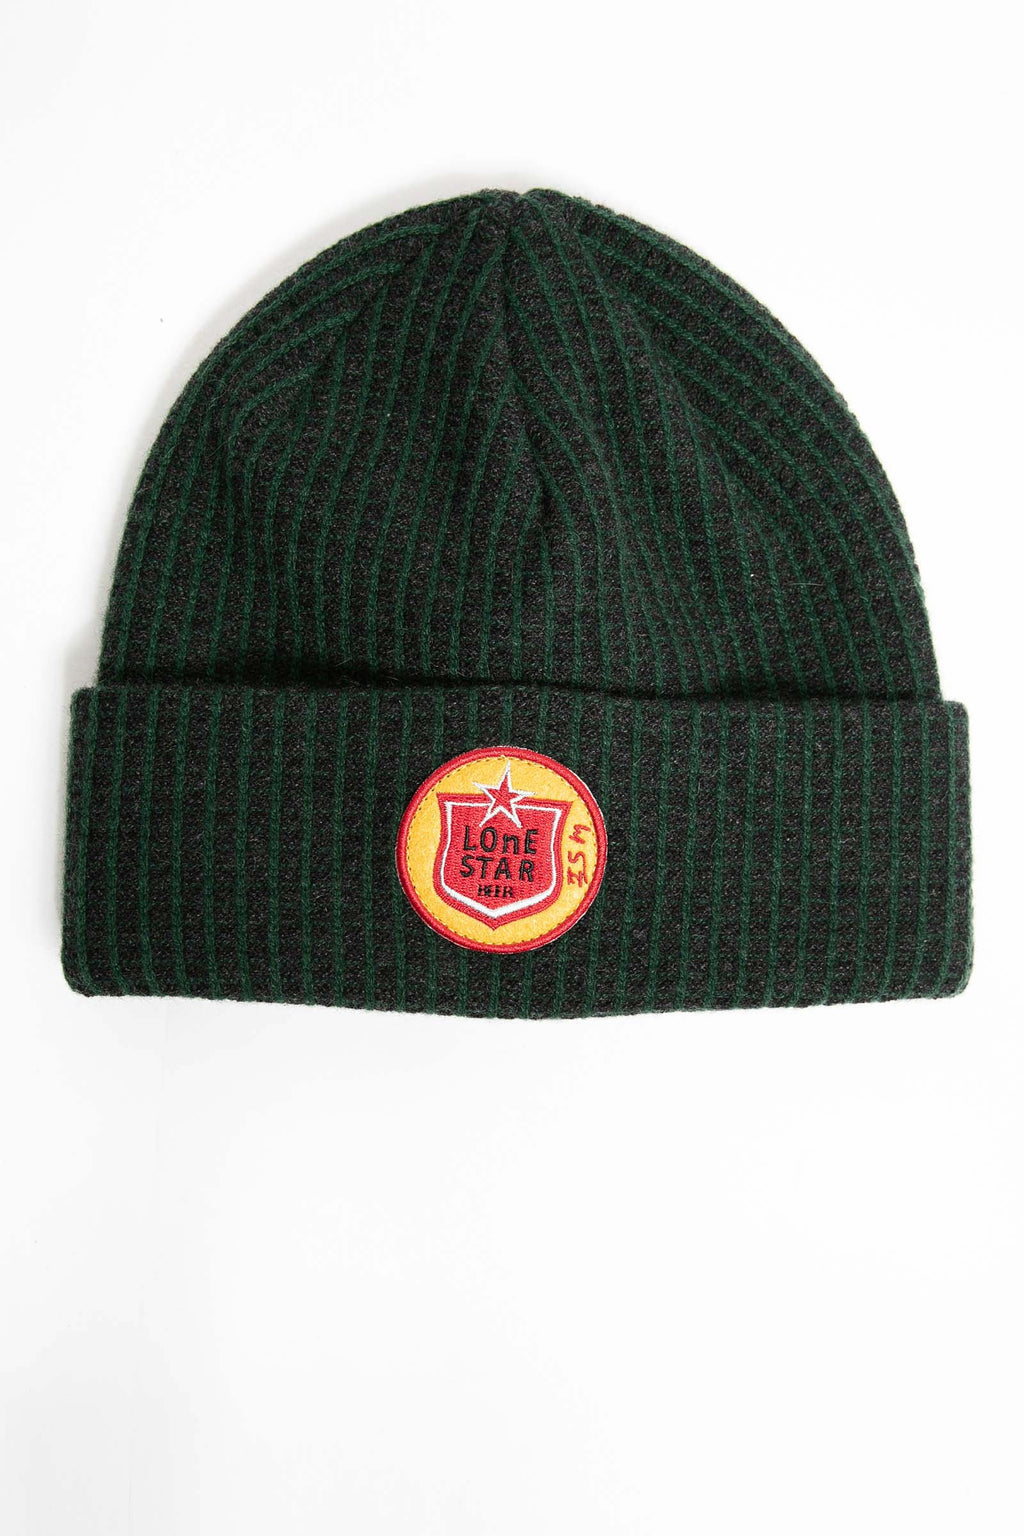 I.S.M. 'Lone Star' Green Cashmere Beanie